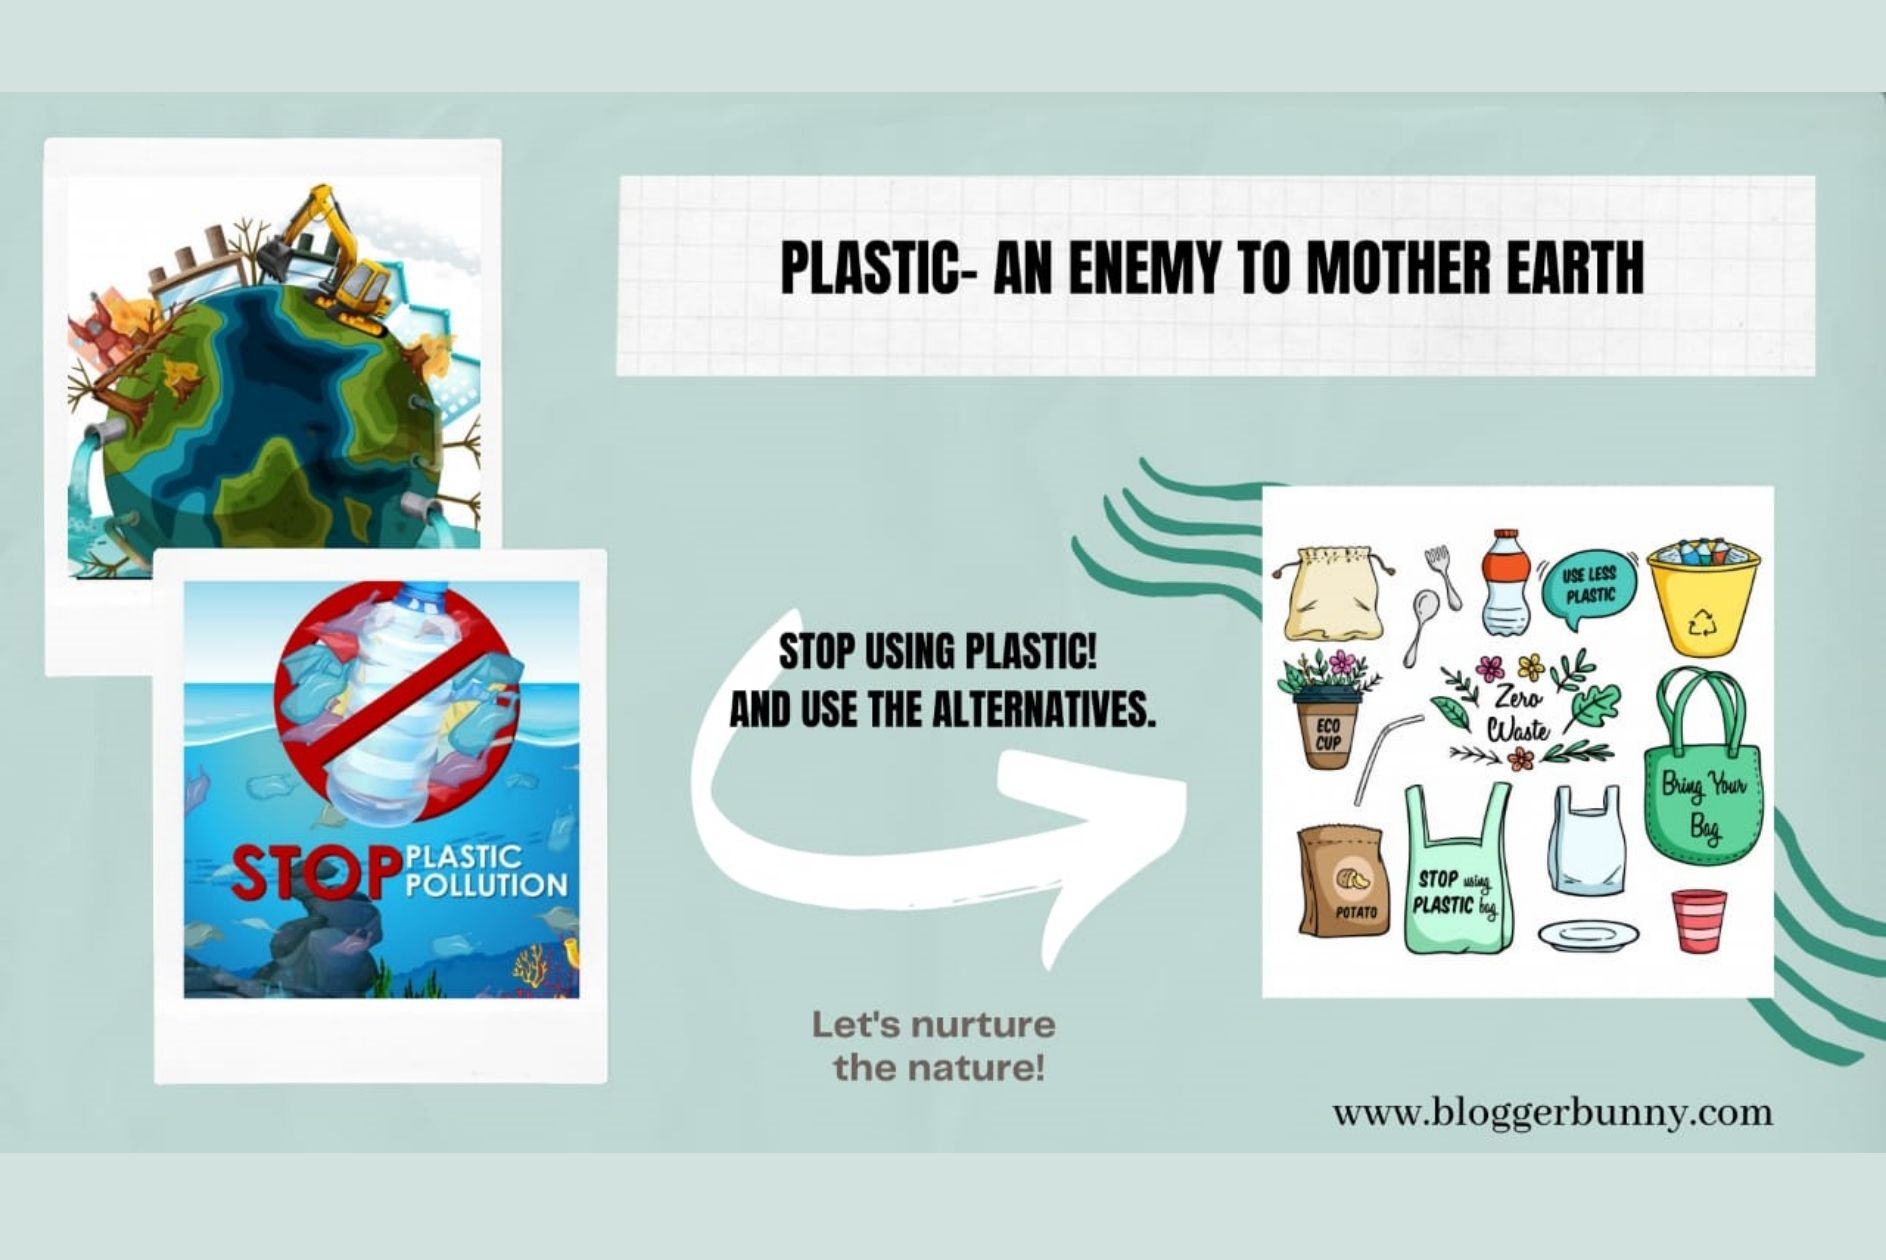 Plastic – An Enemy to Mother Earth